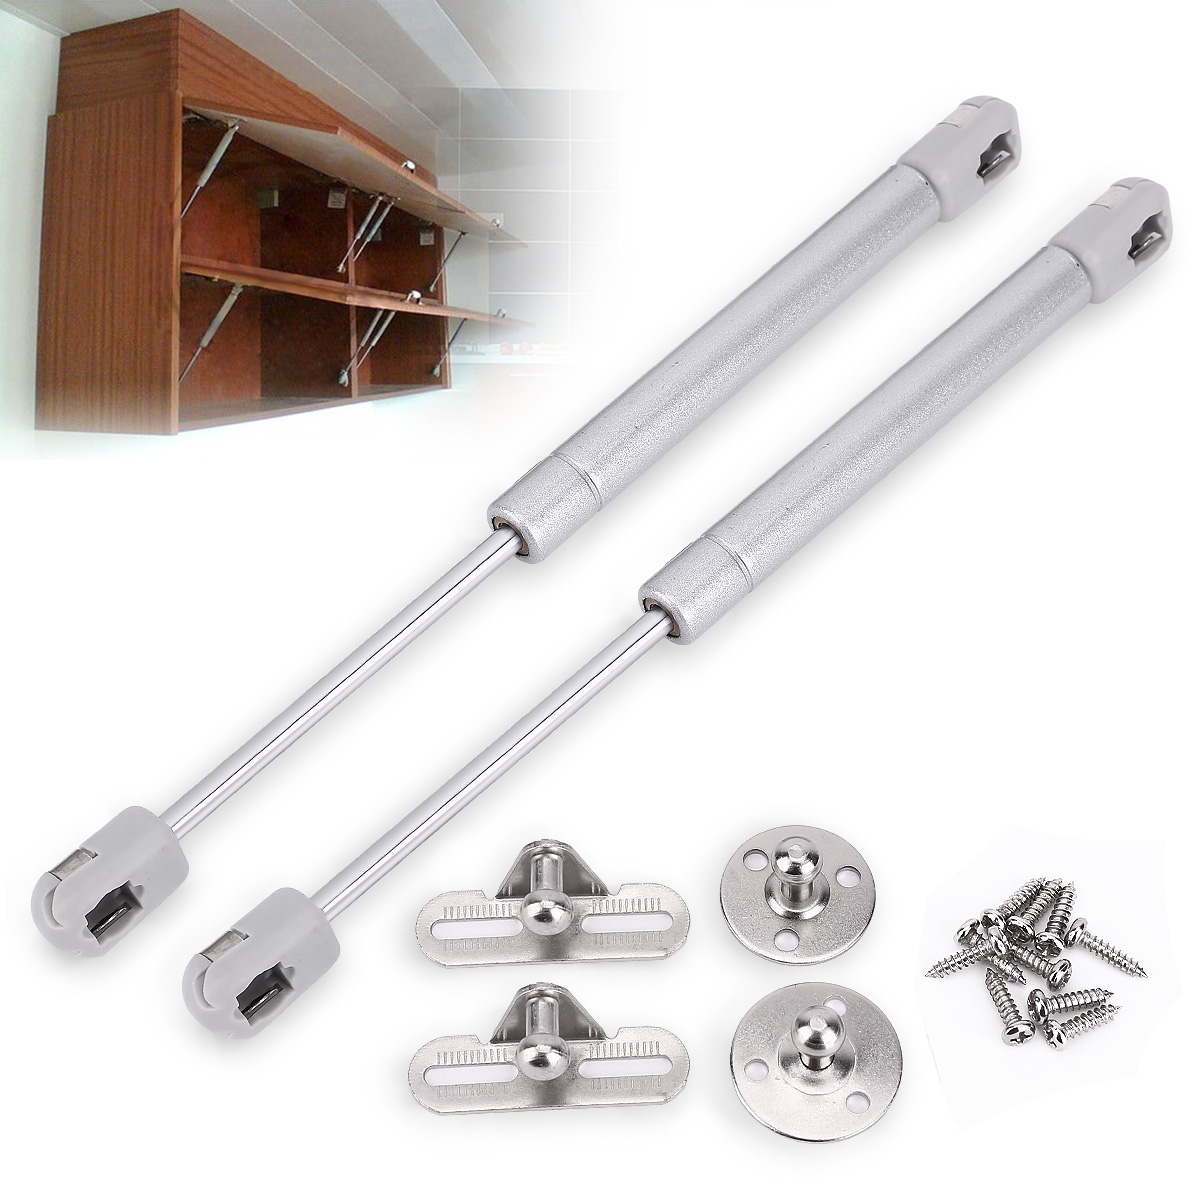 Lift Hinges For Kitchen Cabinets: Kitchen Cabinet Door Lift Up Hydraulic Gas Spring Flap